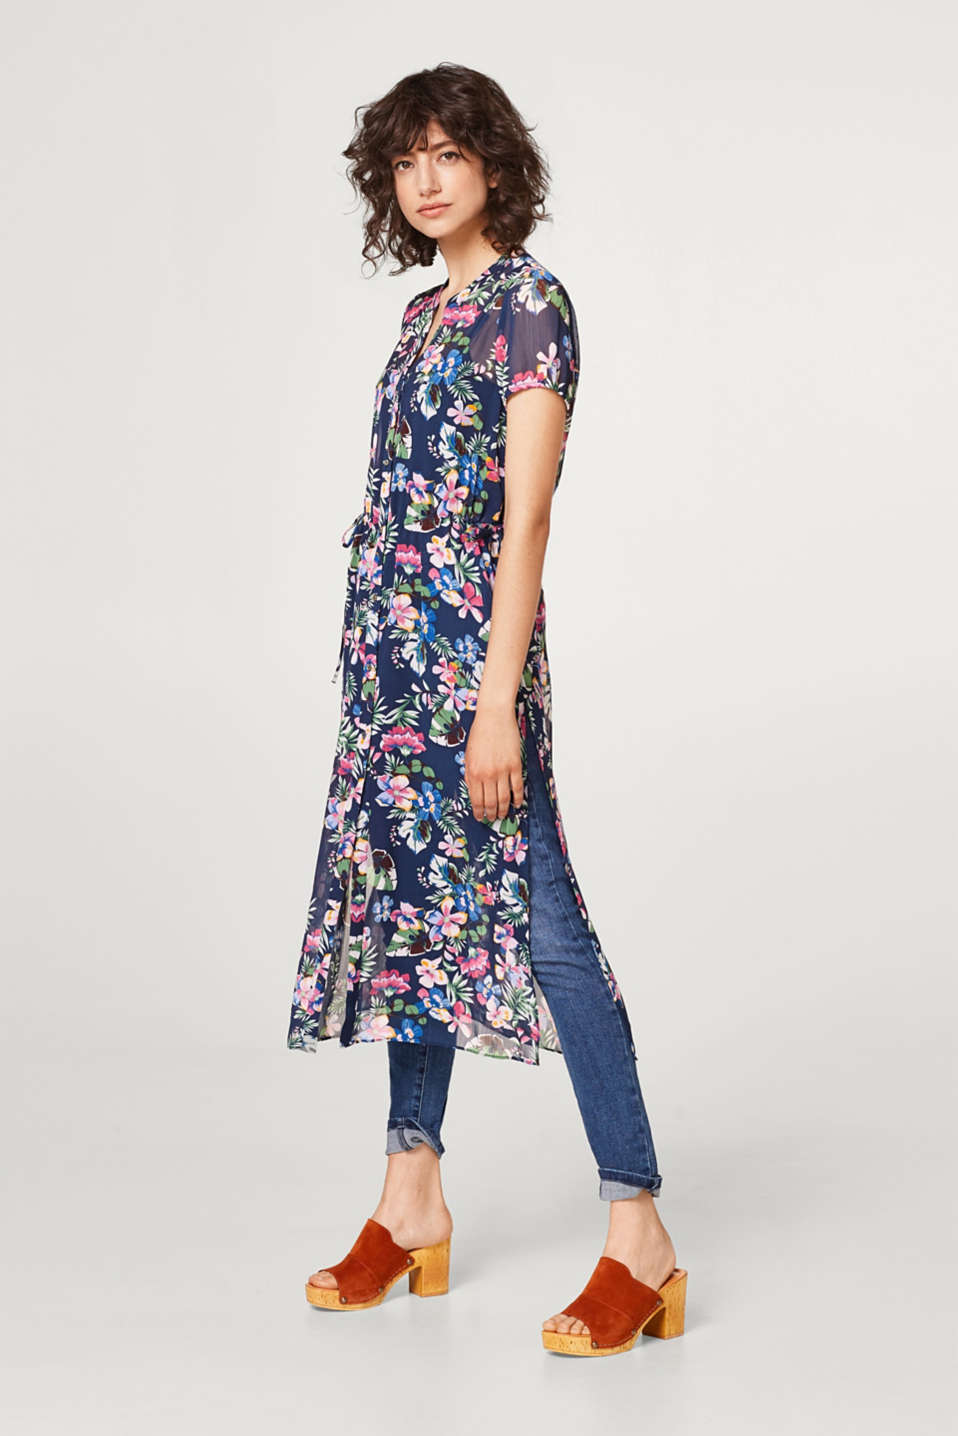 Sheer chiffon dress with a floral pattern